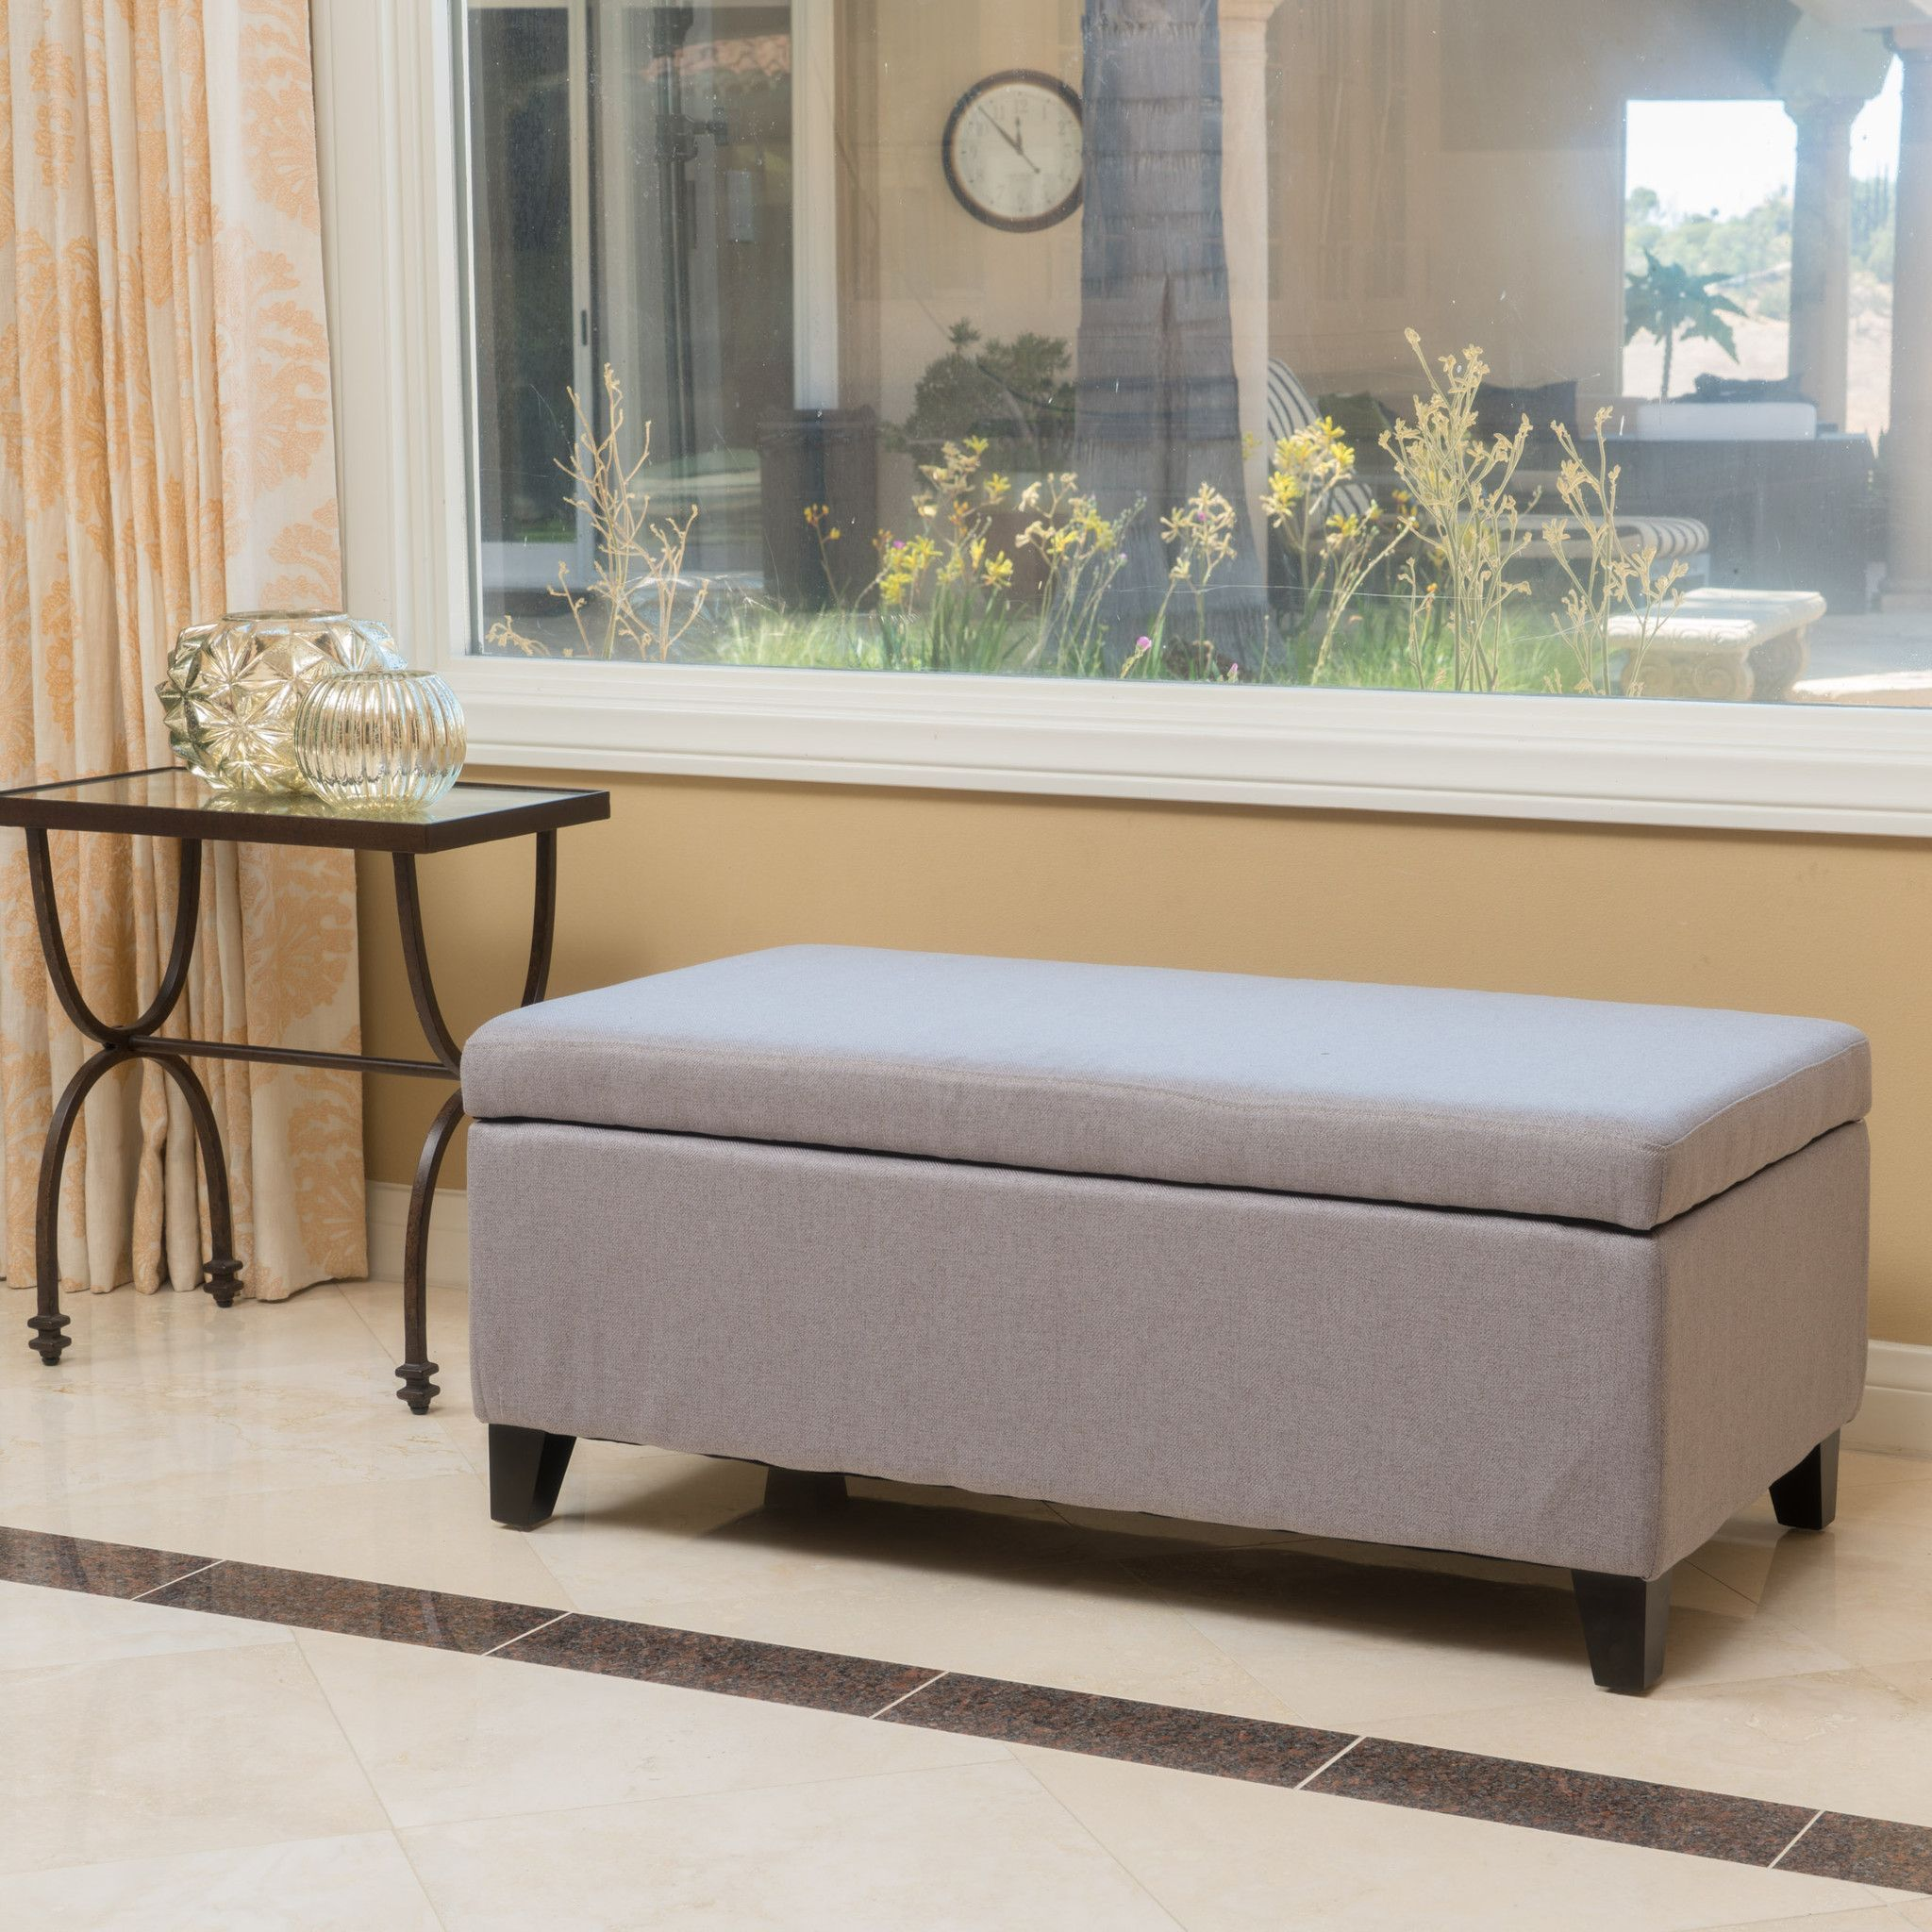 Enjoy this storage ottoman bench in your